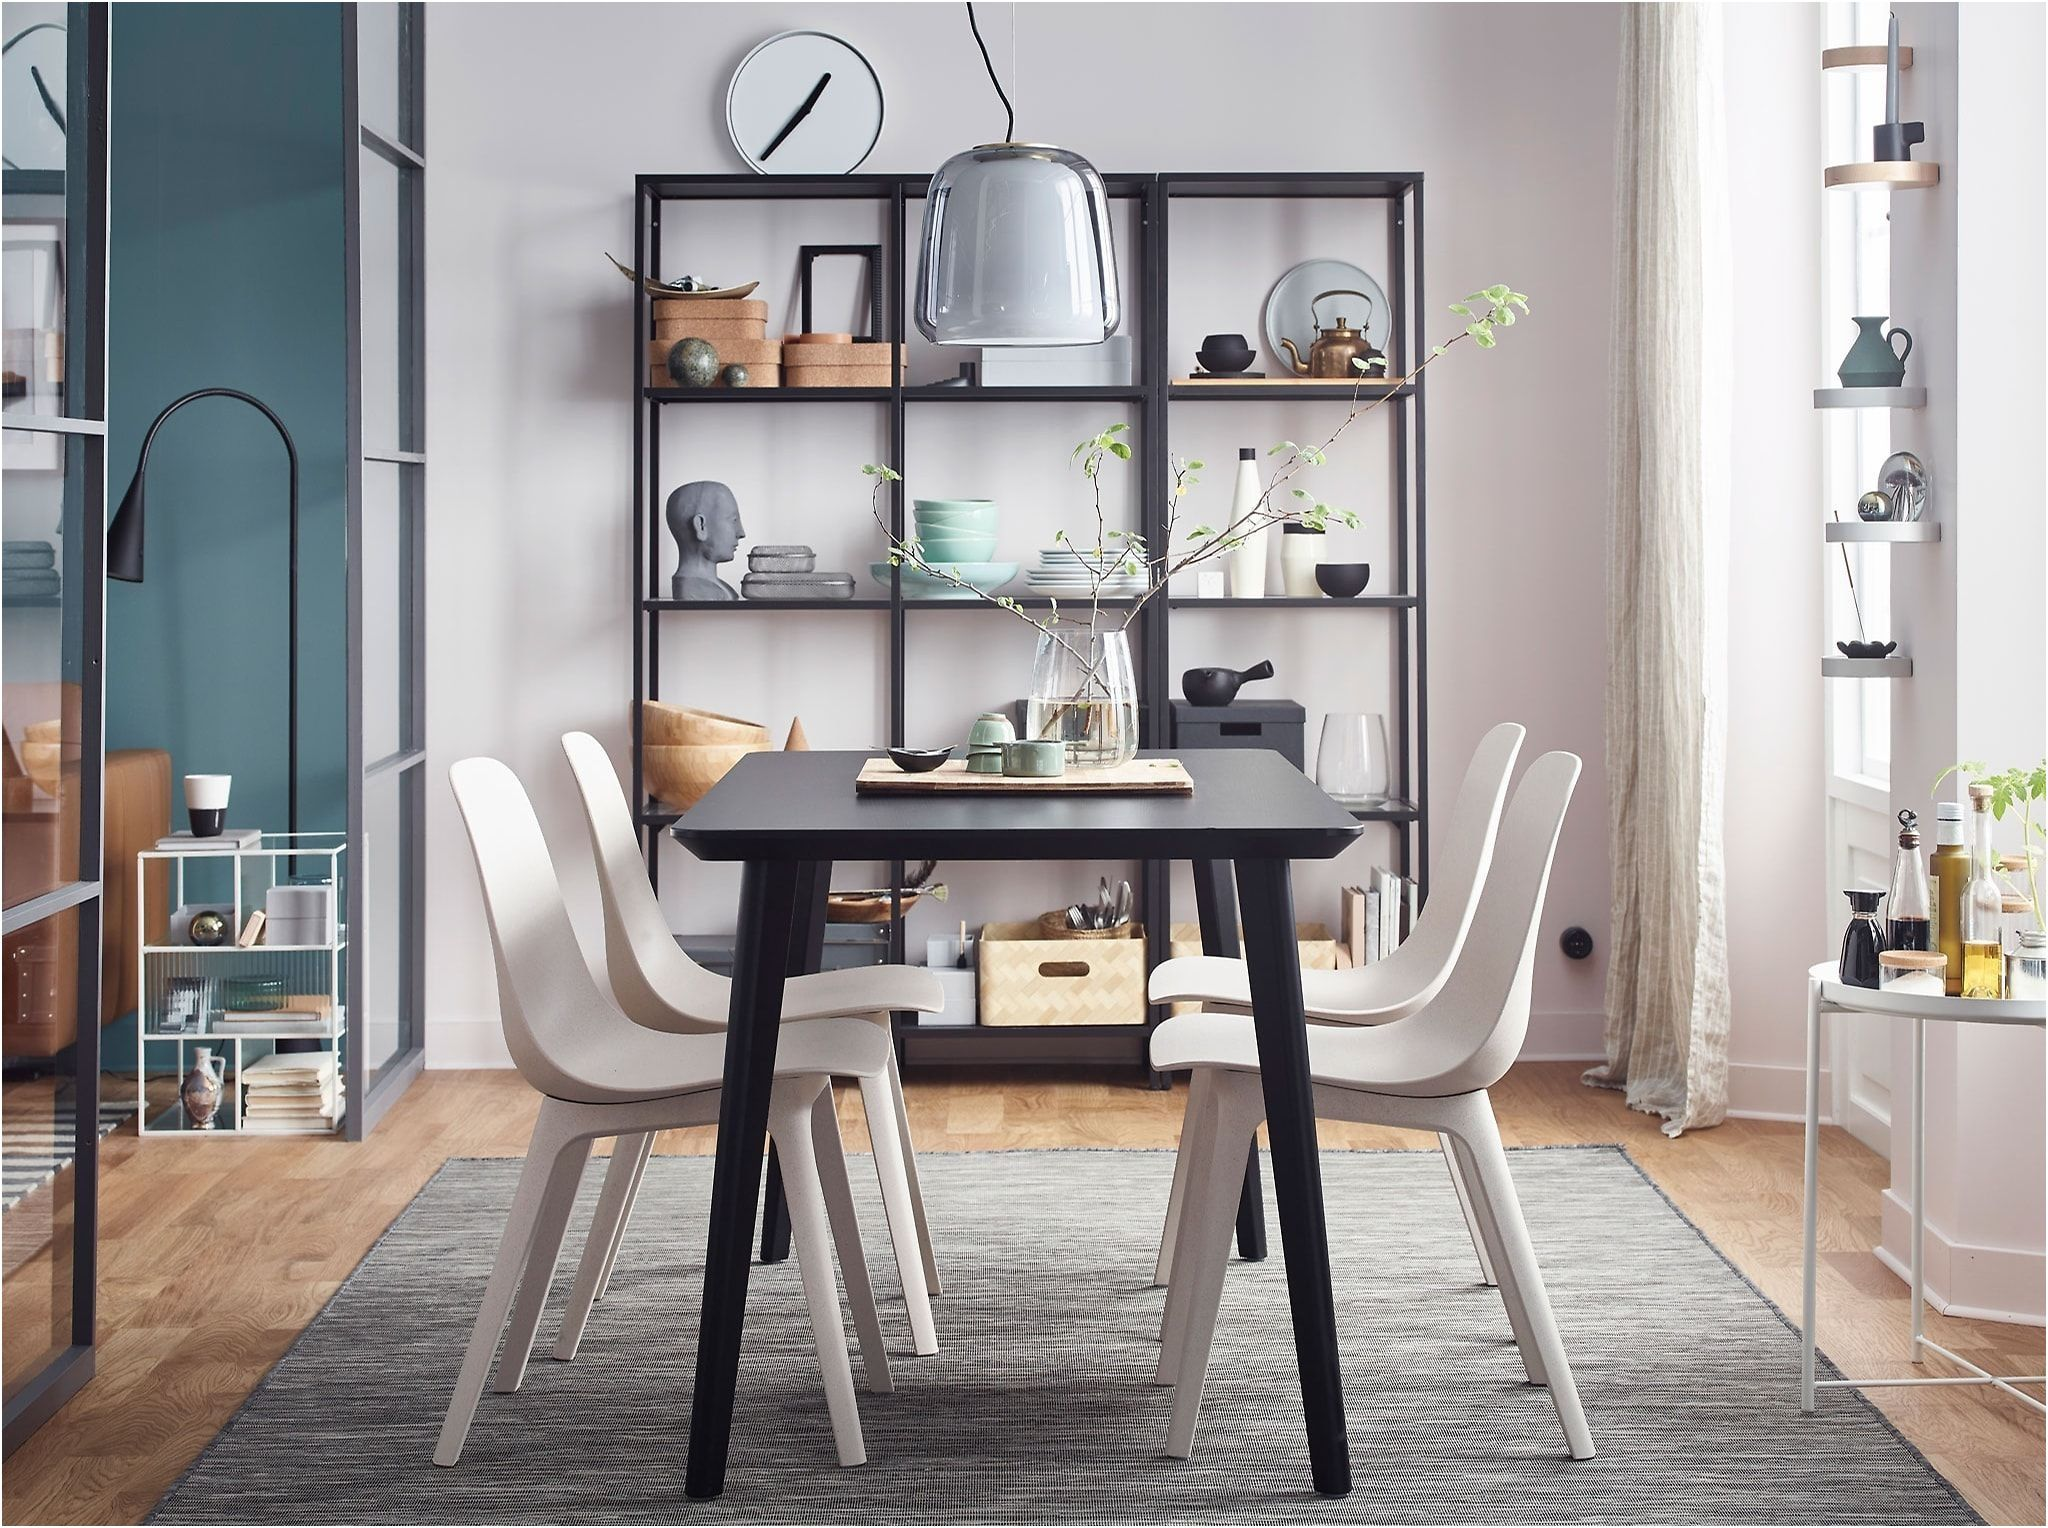 10 Amusant Ikea Table Salle A Manger Photos Ikea Dining Room Ikea Dining Dining Room Inspiration